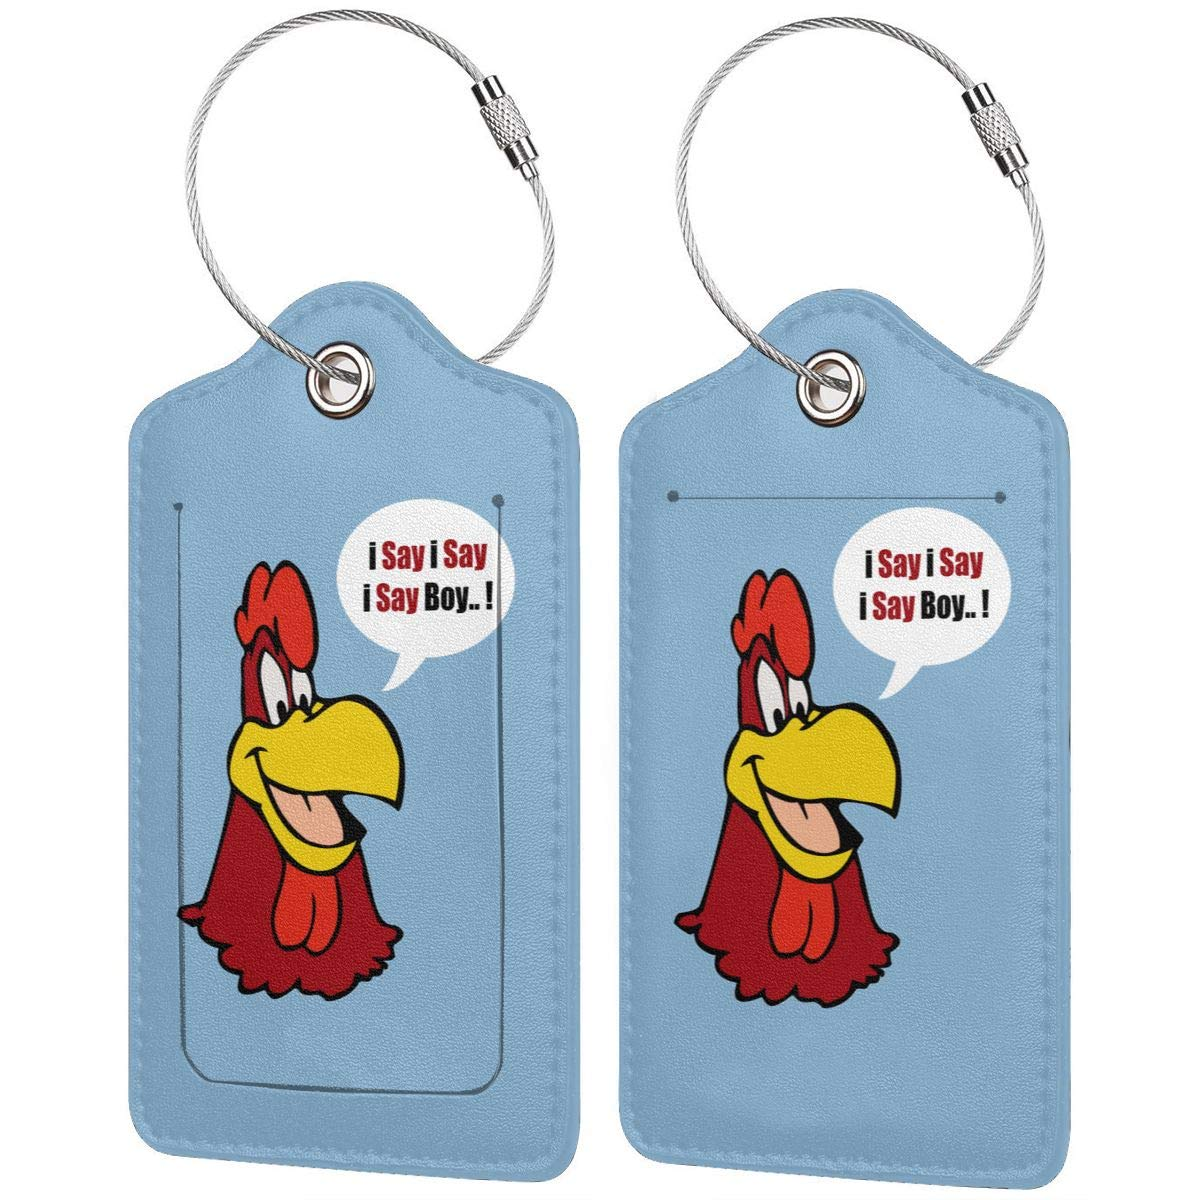 Foghorn Leghorn Leather Luggage Tag Travel ID Label For Baggage Suitcase